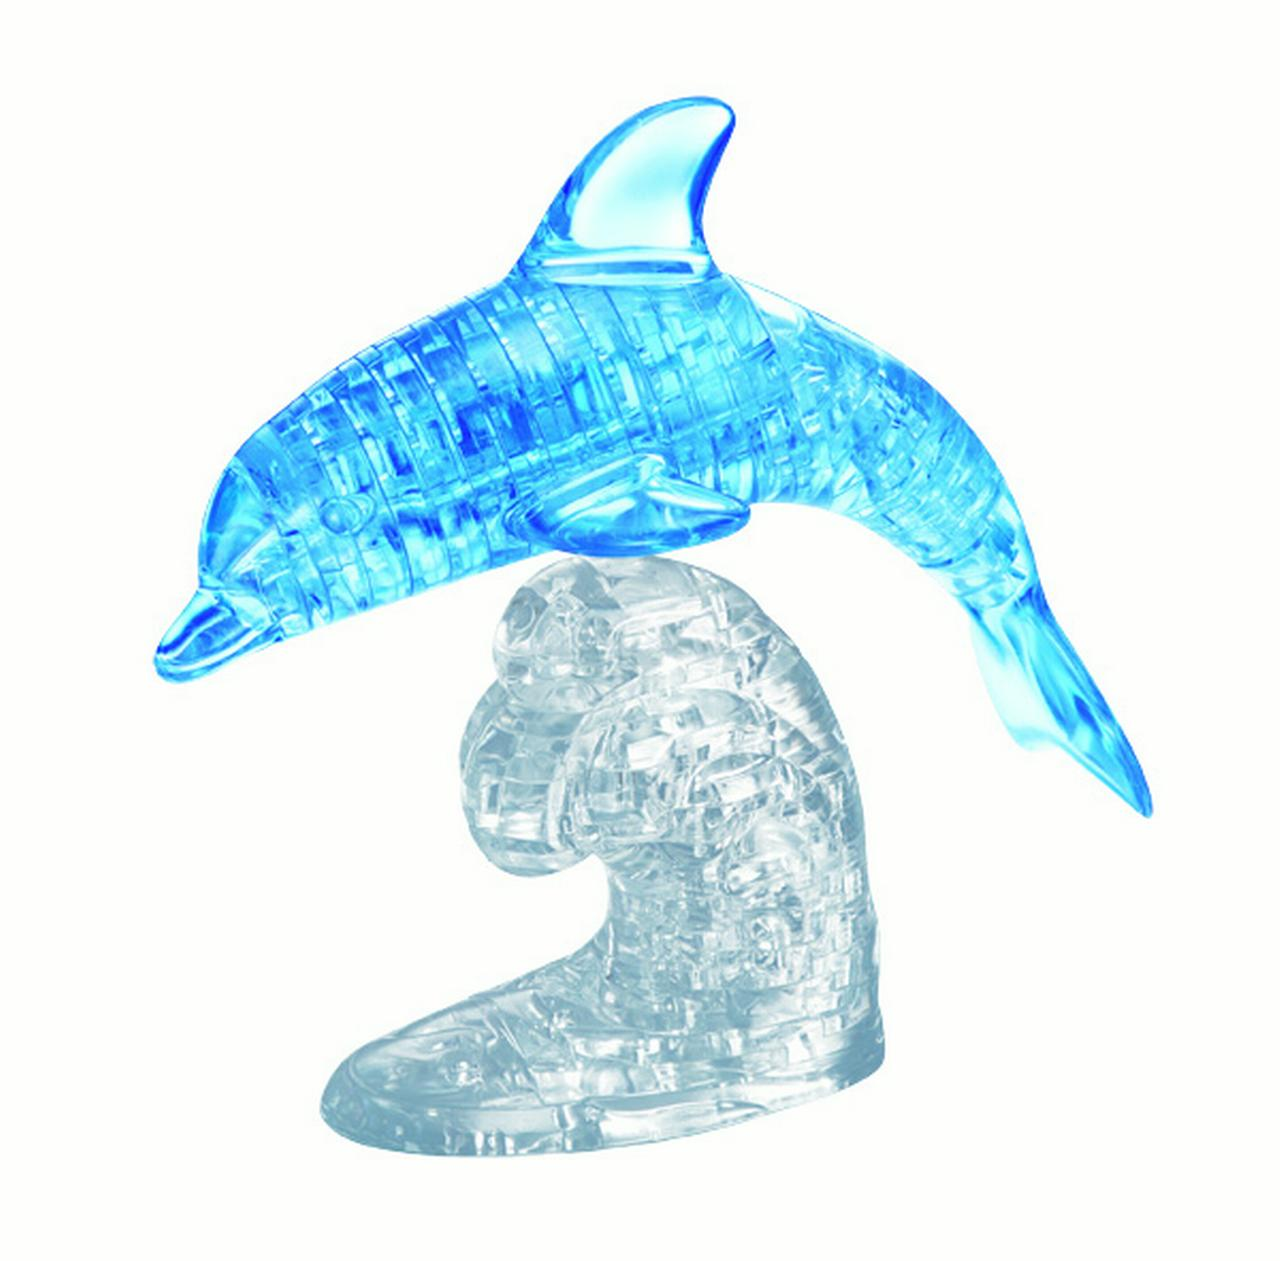 Deluxe 3D Crystal Puzzle - Blue Dolphin